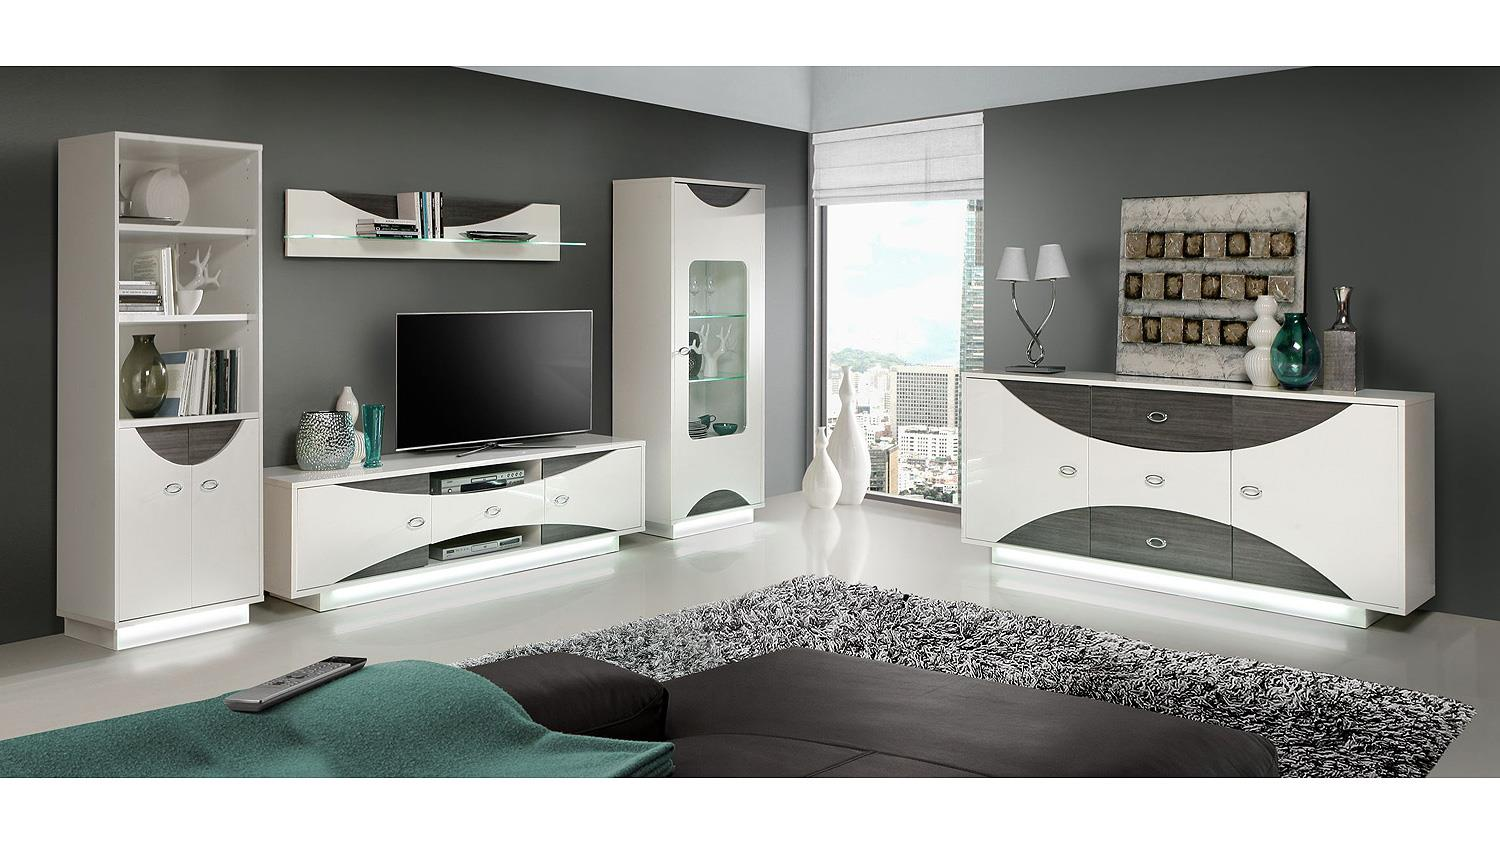 design wohnwand anbauwand wei grau. Black Bedroom Furniture Sets. Home Design Ideas